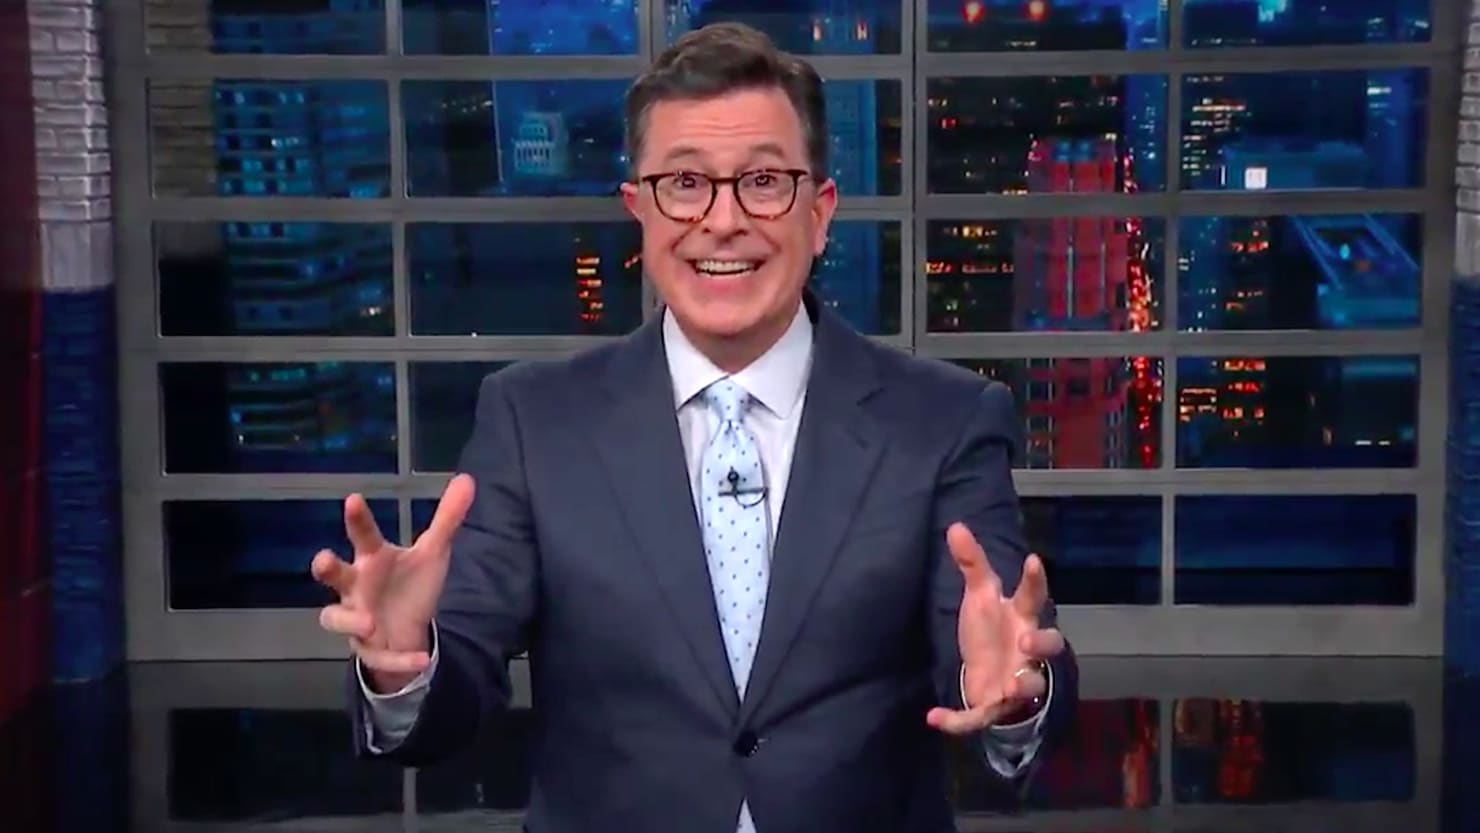 Stephen Colbert Is Dying to Know Who Sean Hannity 'Had Sex With'